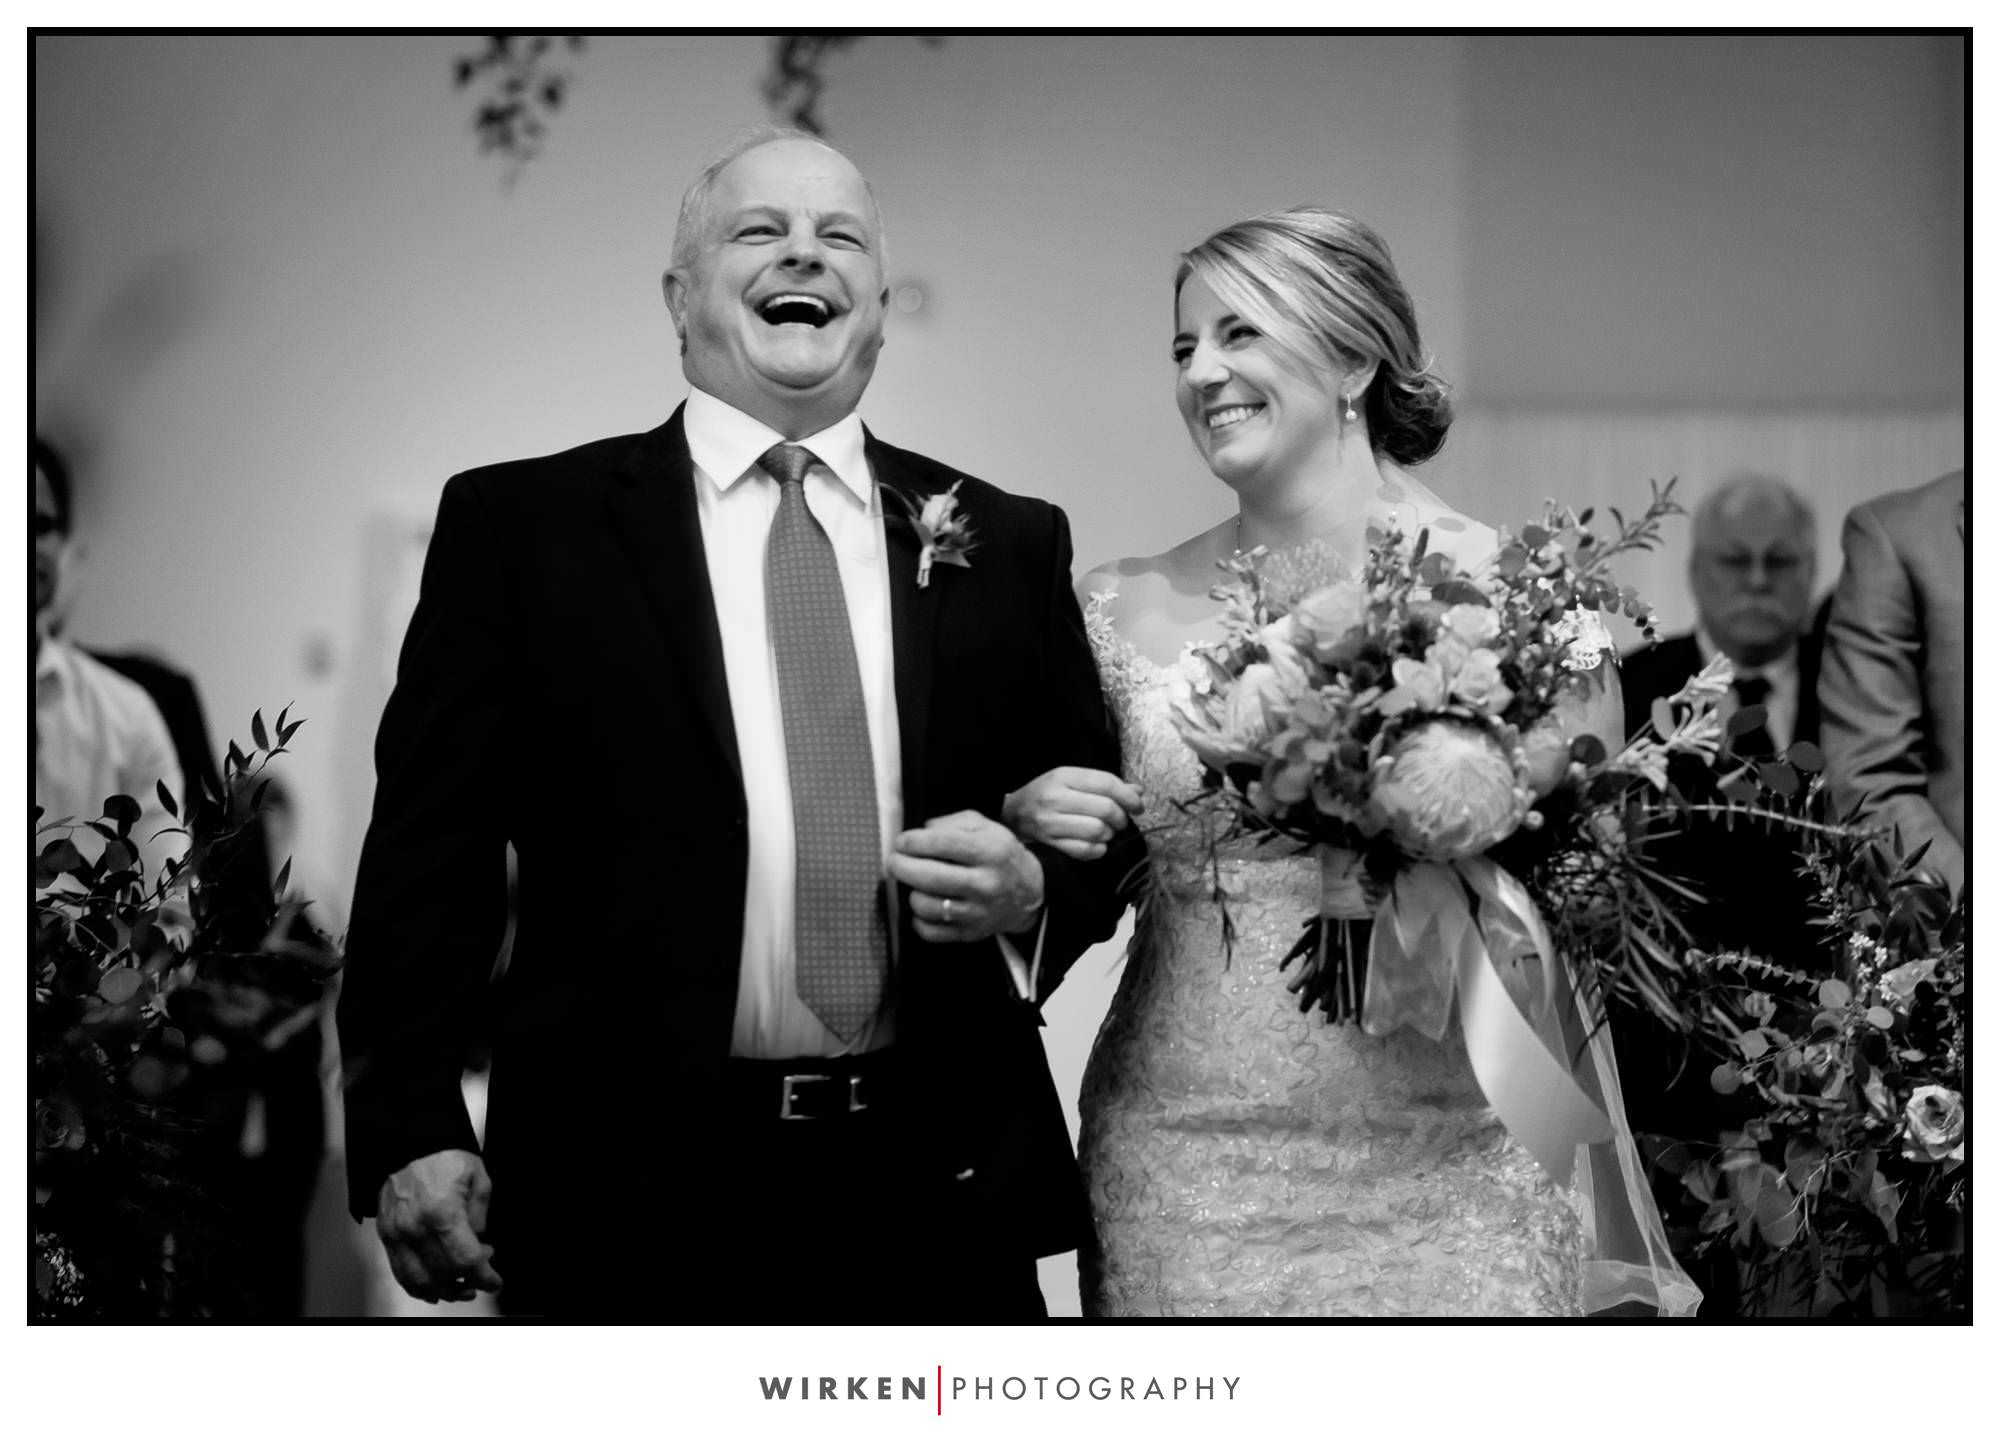 Leah's dad laughs as he walks his daughter down the aisle.